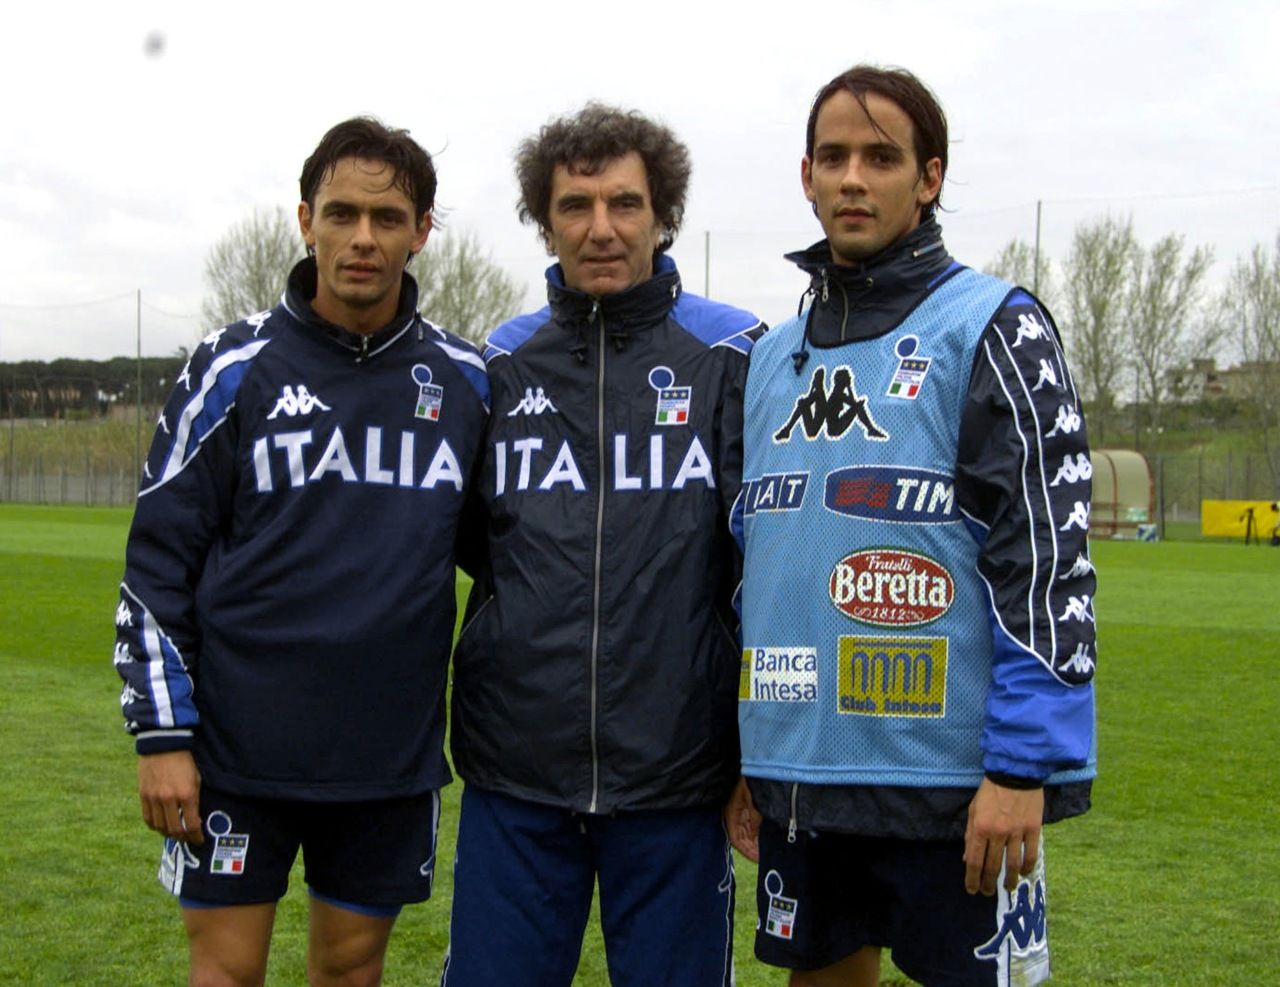 Pippo Inzaghi Dino Zoff Et Simone Inzaghi Italie Football Is Life Dino Zoff Football